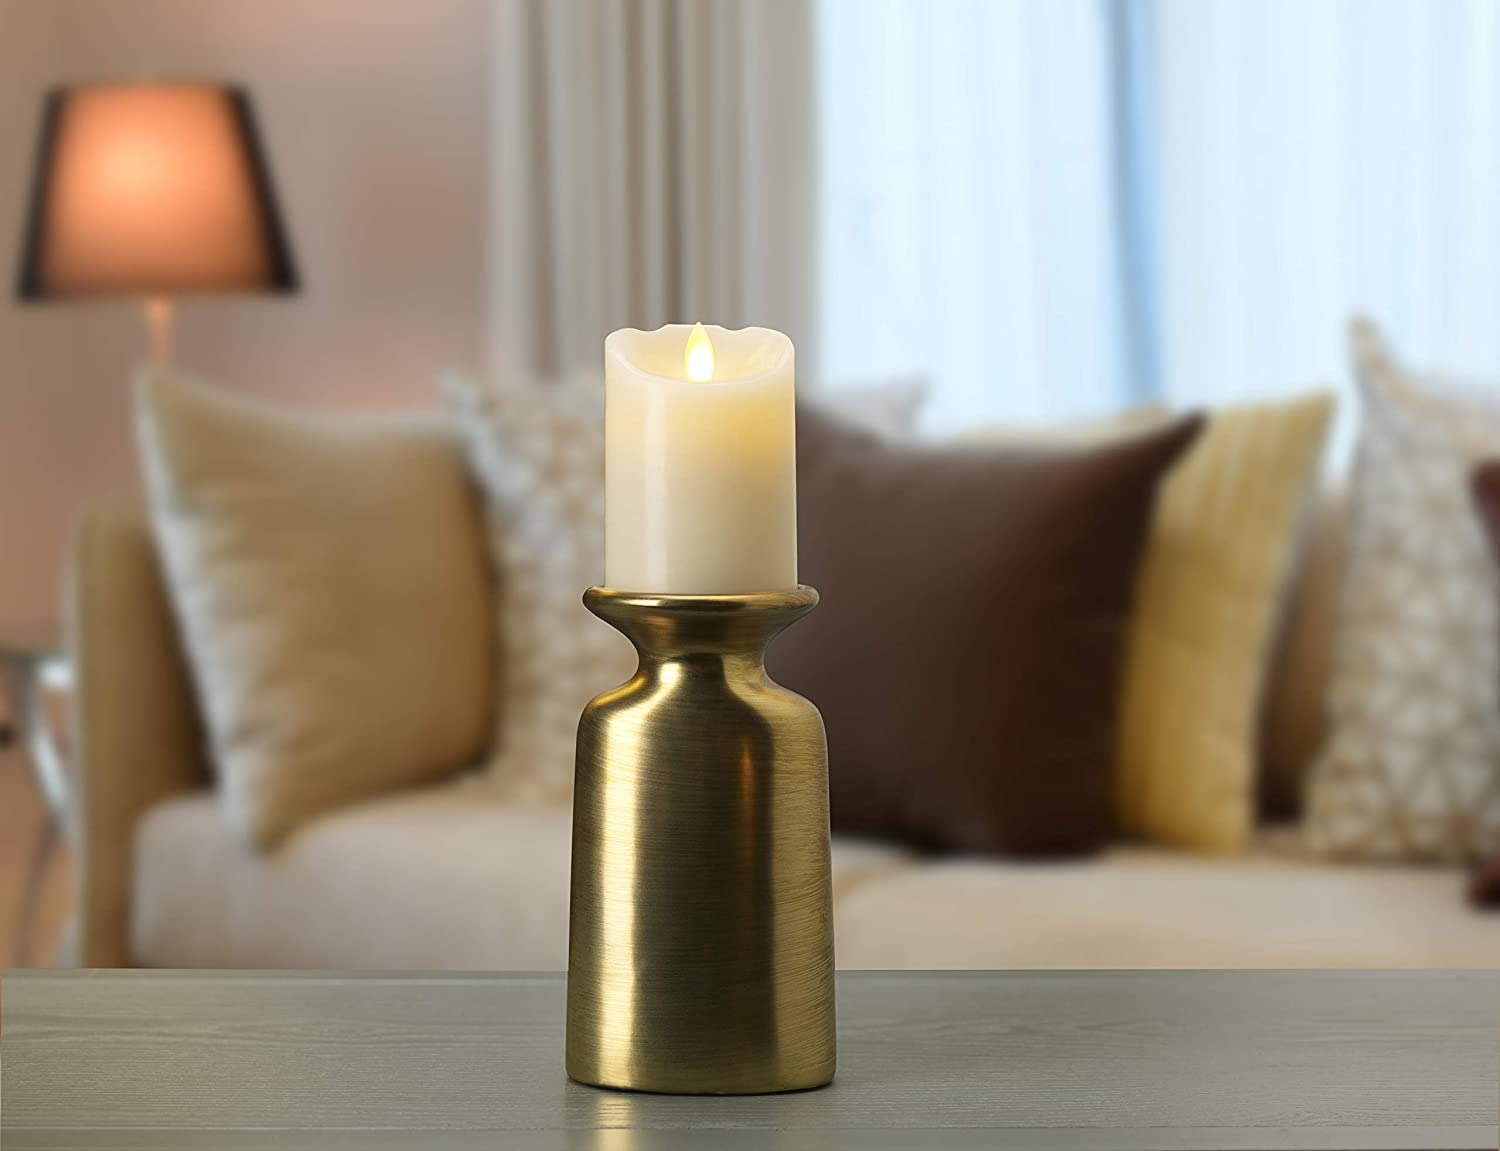 8 inch Scott Living Luxe Matte Gold Ceramic Candle Holder